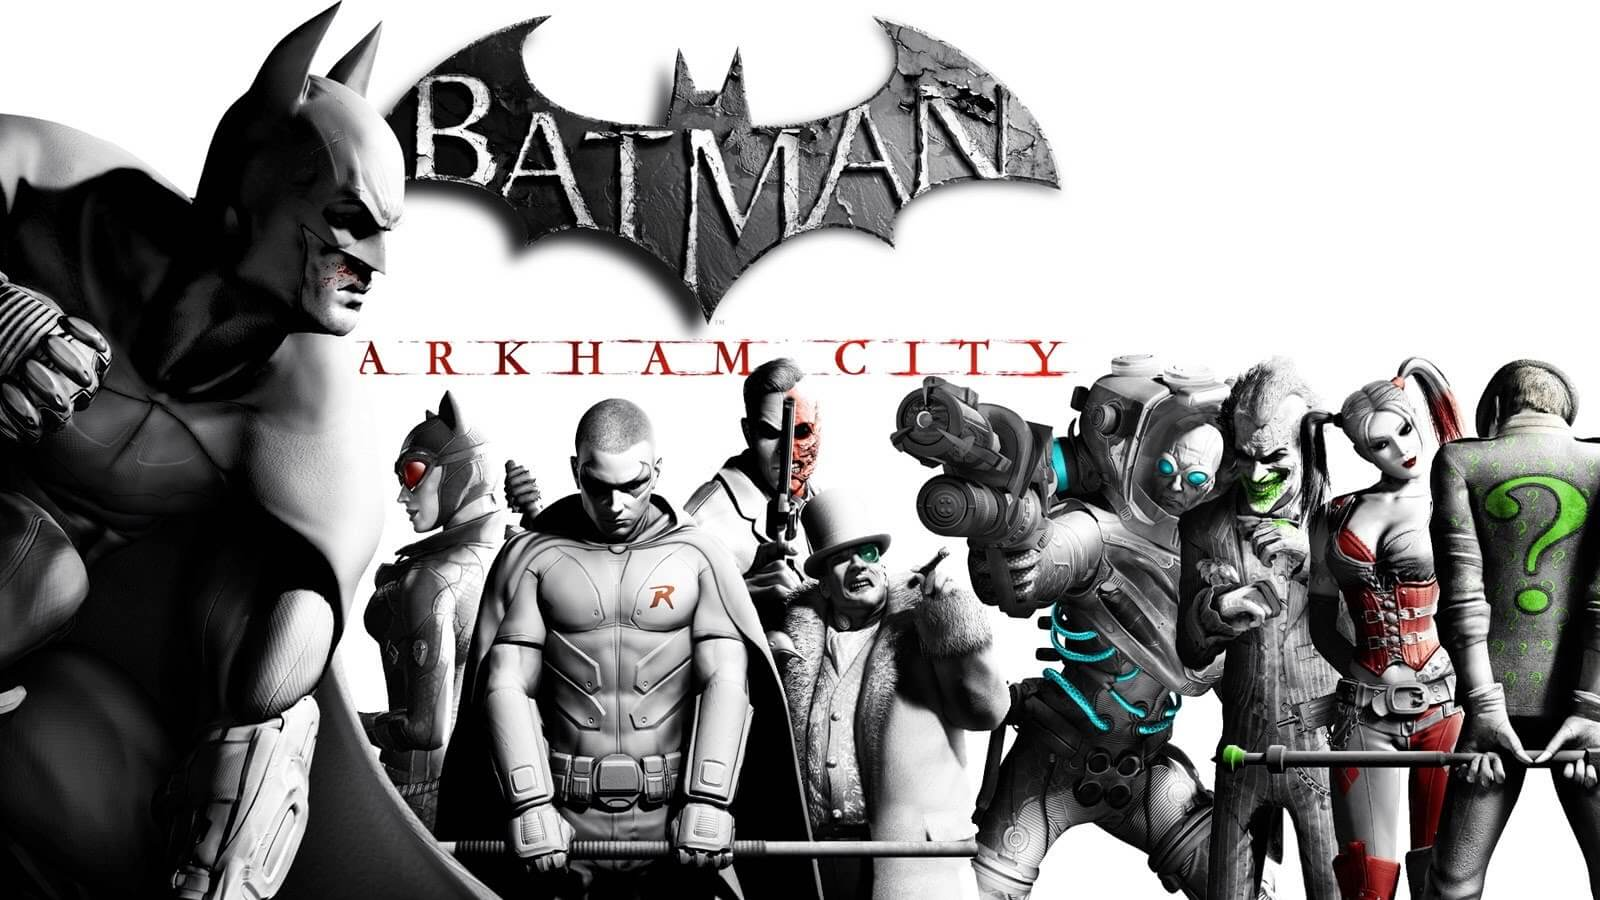 Batman Arkham City 1 batman arkham city game guide list of weapons, gadgets and arkham city overload fuse box at eliteediting.co